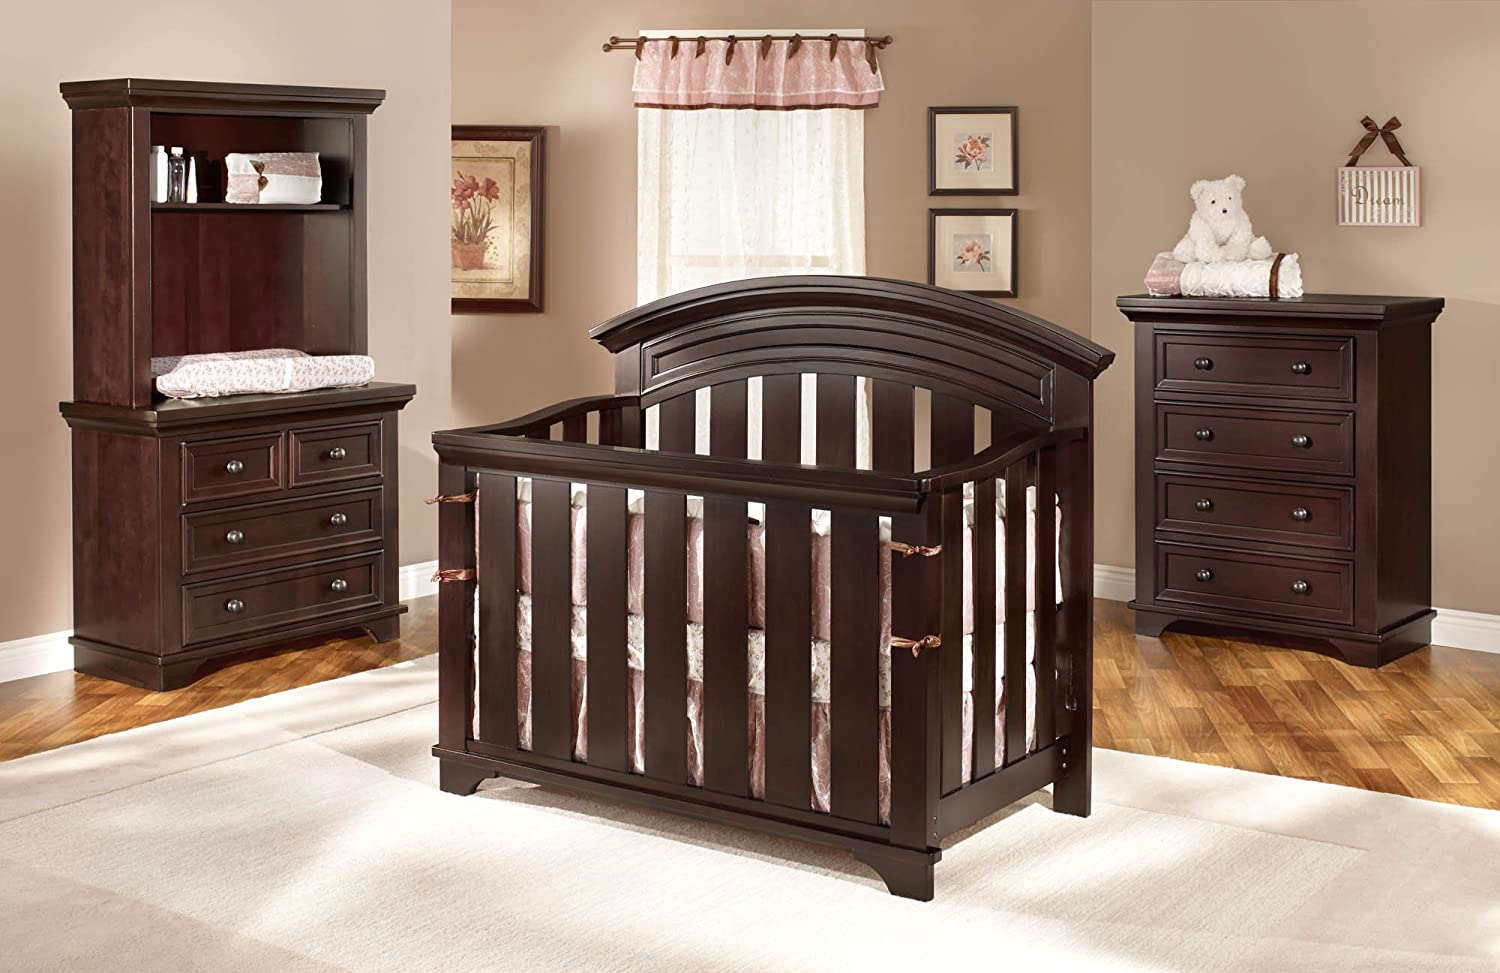 collection pin in convertible crib cribs santa westwood fe meadowdale